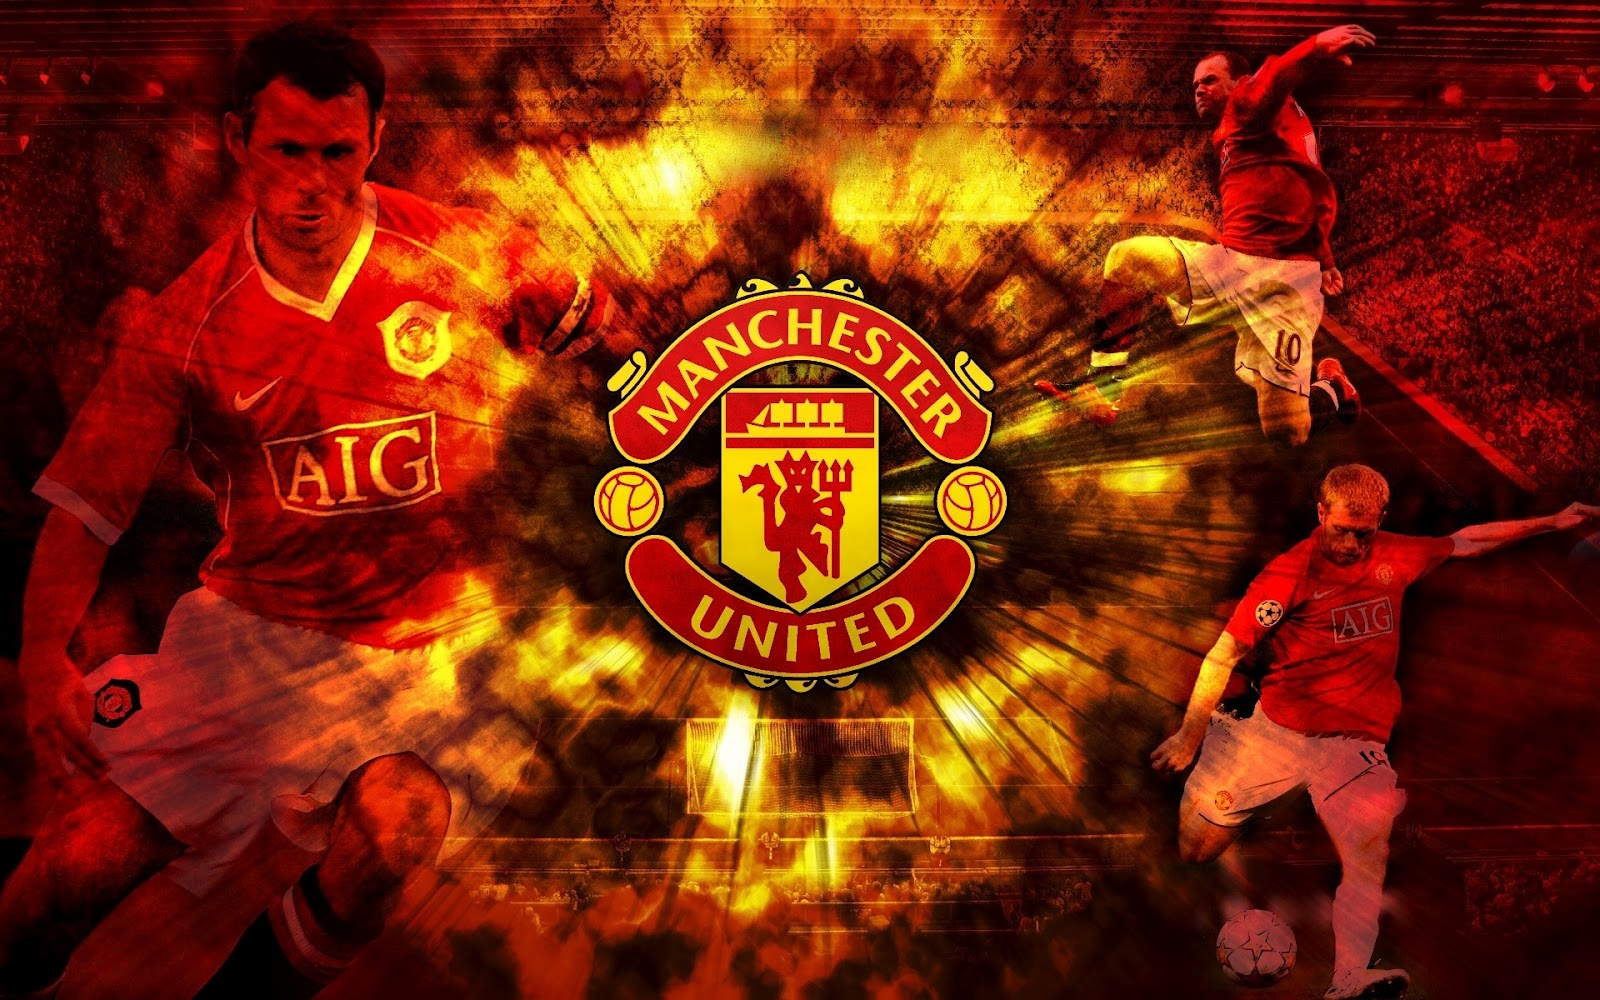 Manchester united logo hd wallpapers 2013 2014 football news and manchester united logo hd wallpapers 2013 2014 football news and updates voltagebd Images